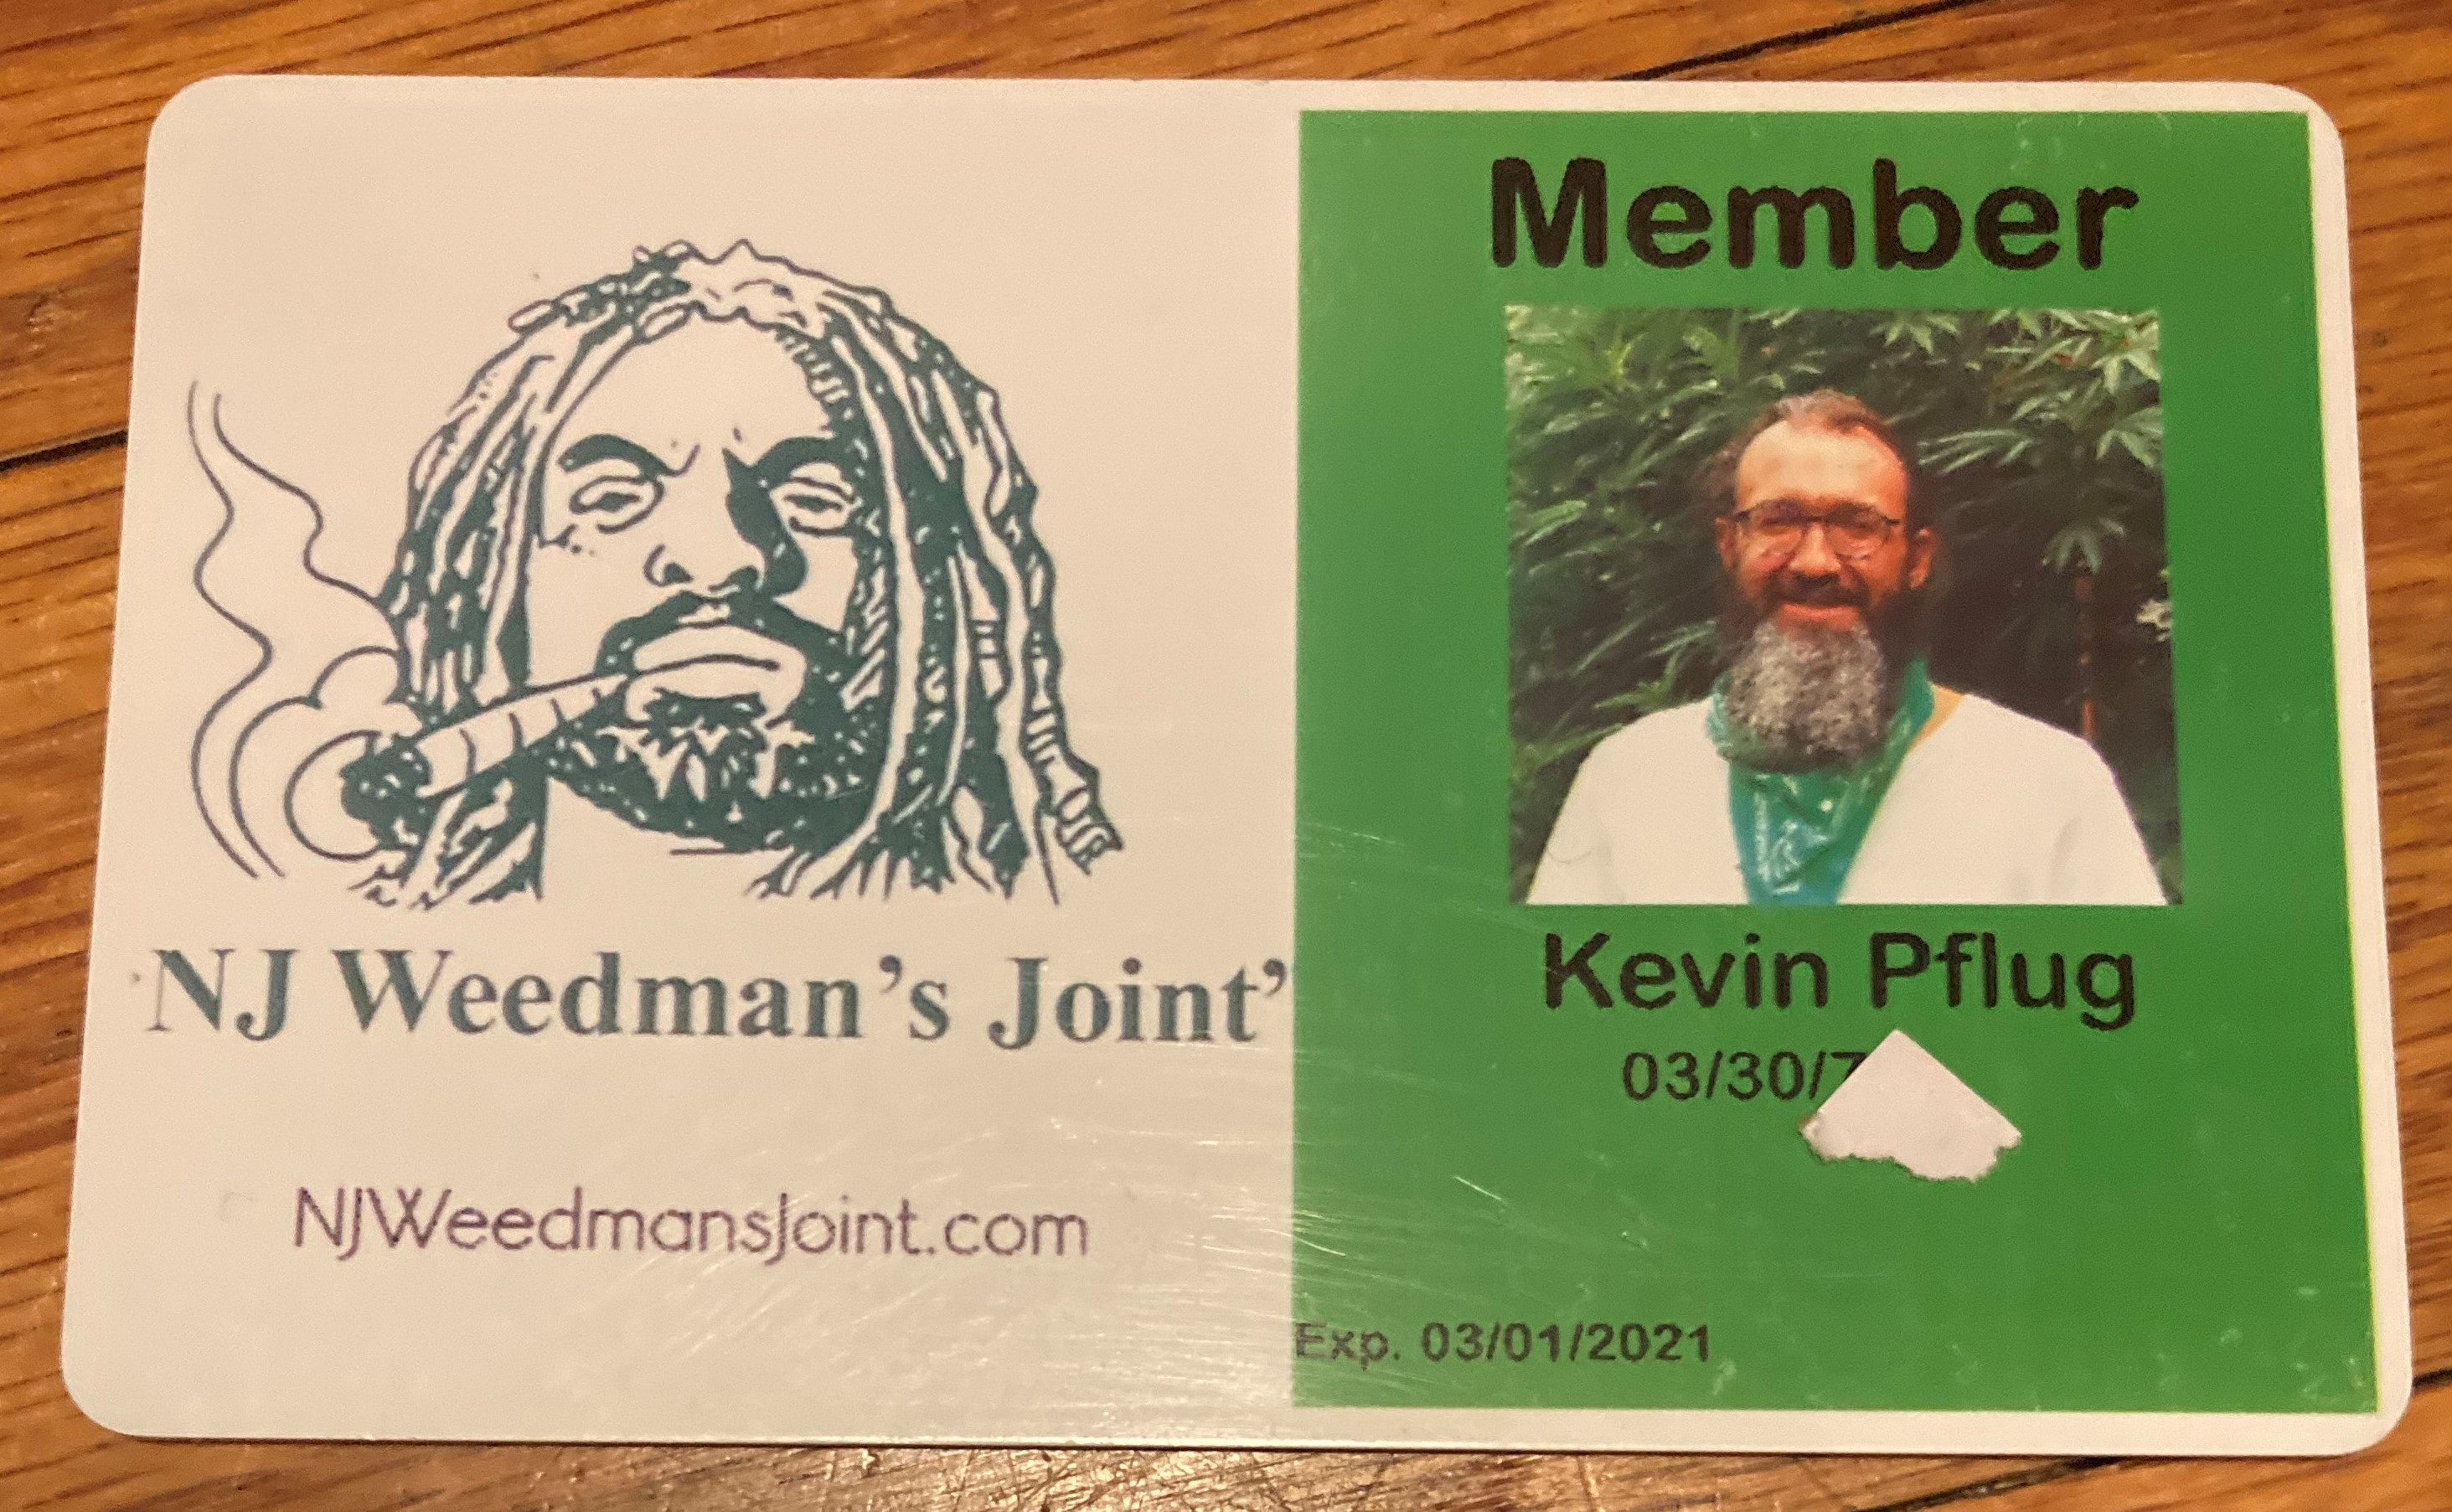 The author's member card for NJ Weedman's Joint and Liberty Bell Temple